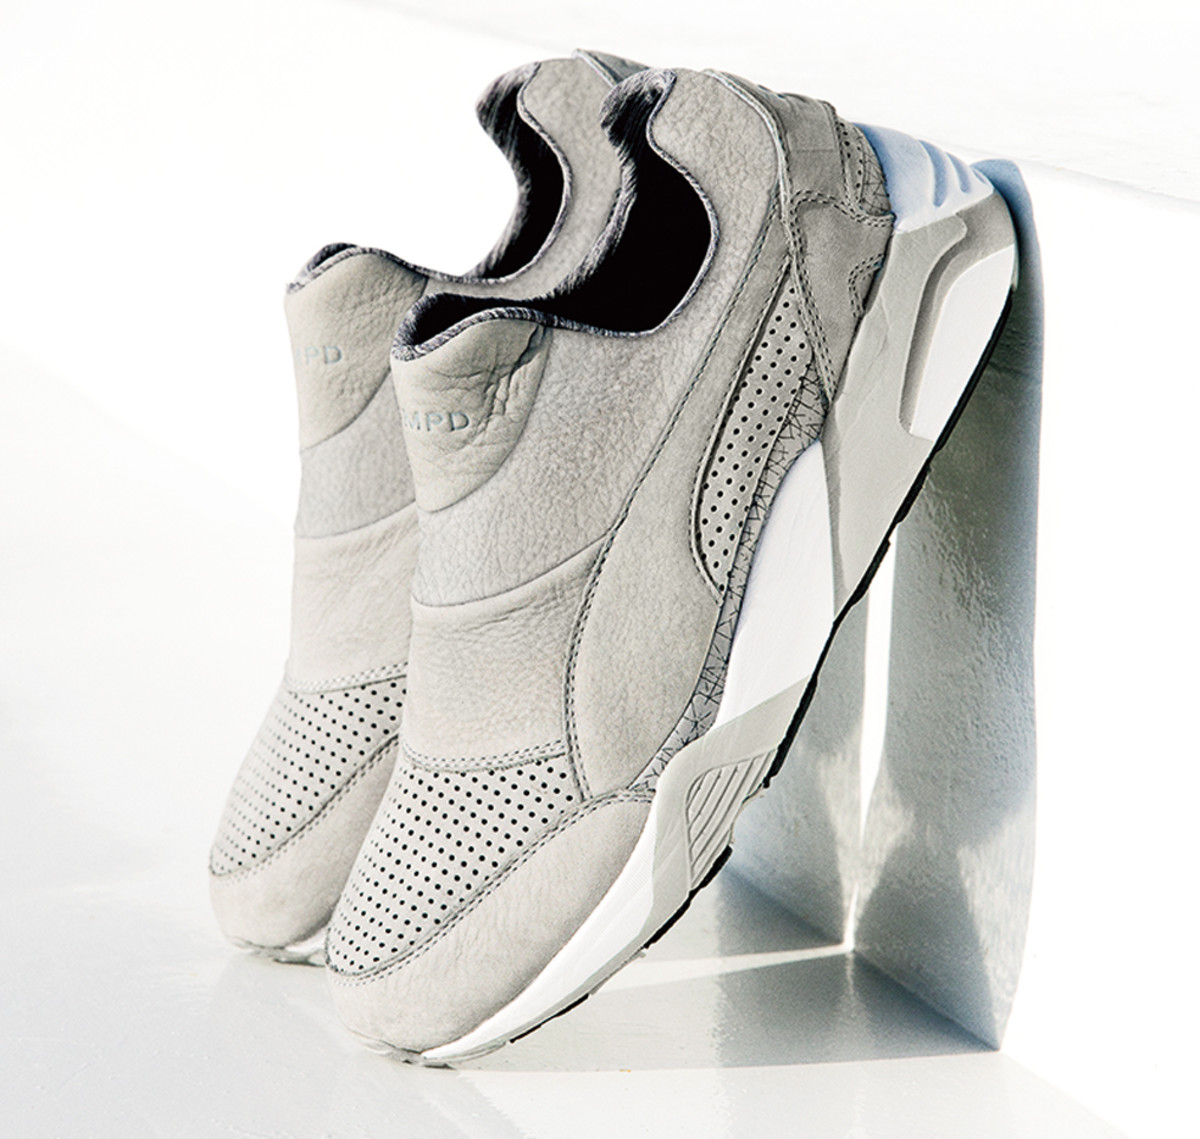 stampd-puma-capsule-collection-04